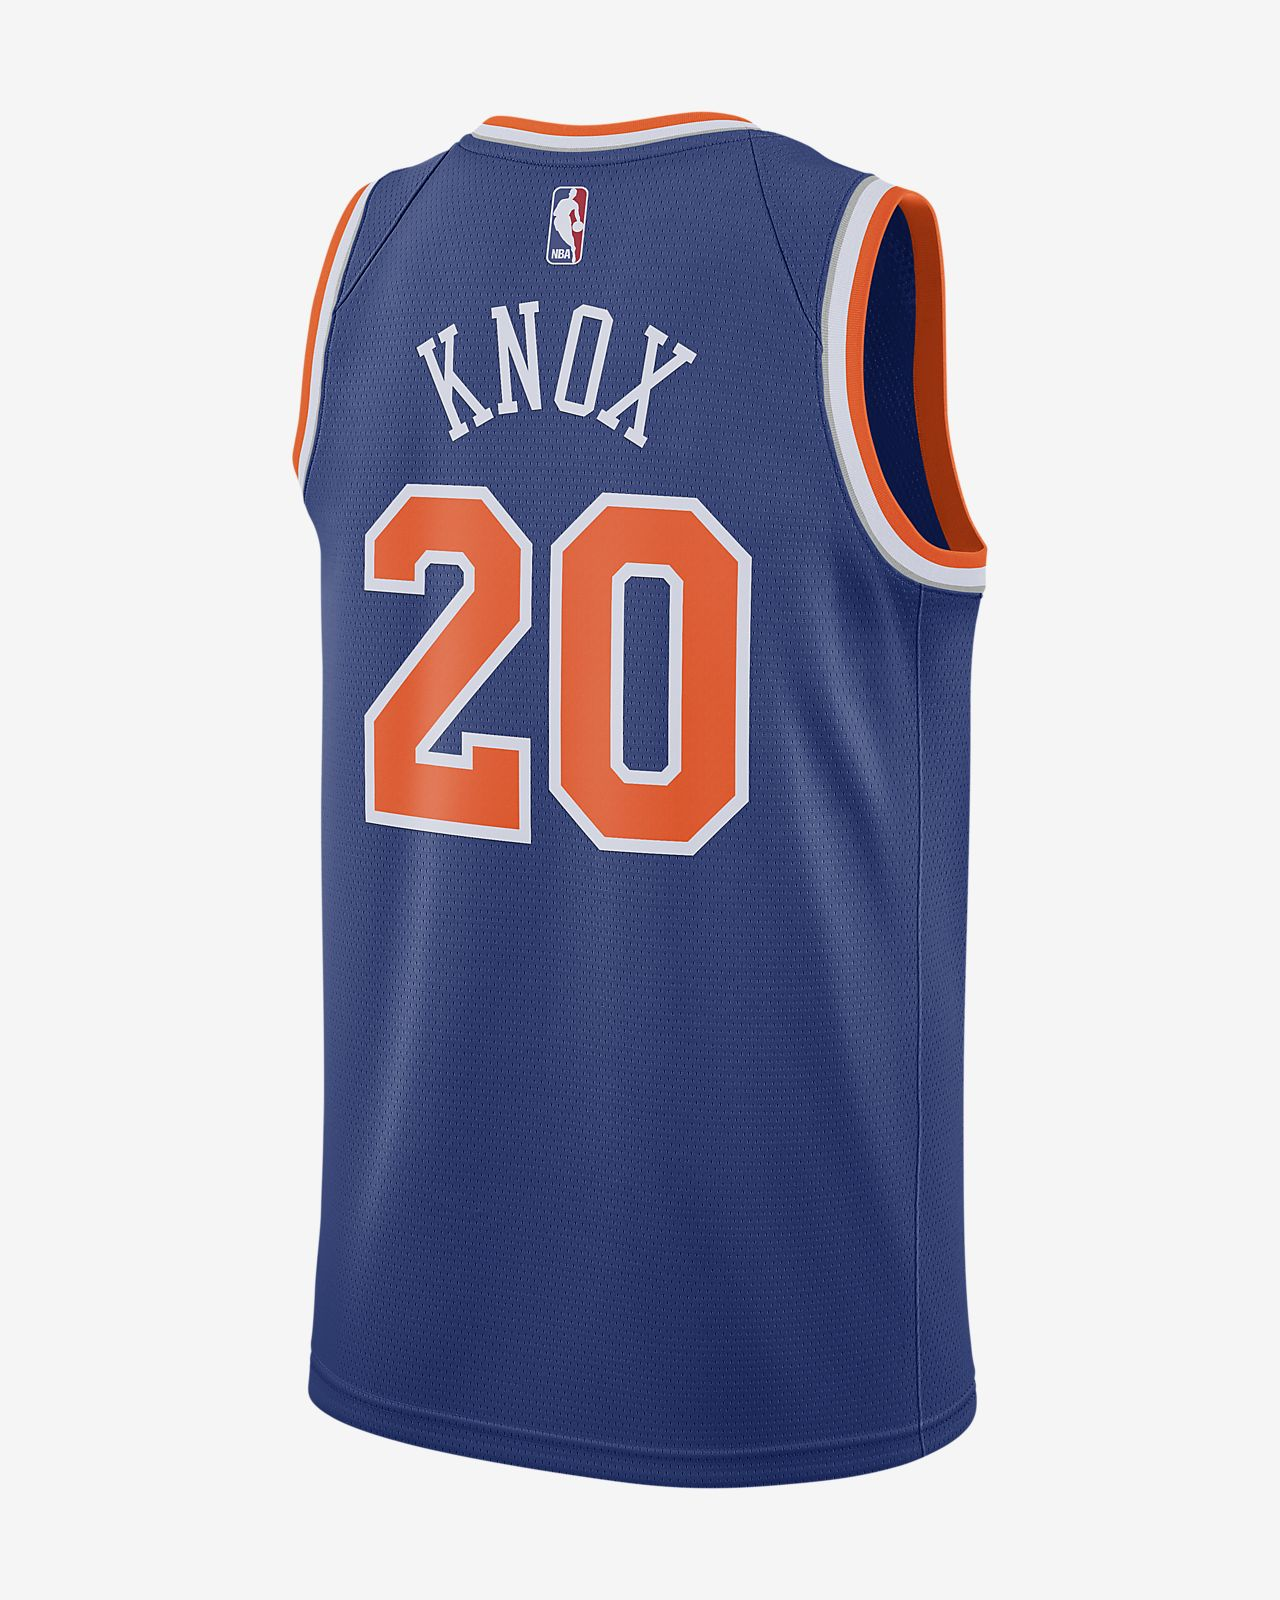 8f3849f0f ... Kevin Knox Icon Edition Swingman (New York Knicks) Men s Nike NBA  Connected Jersey